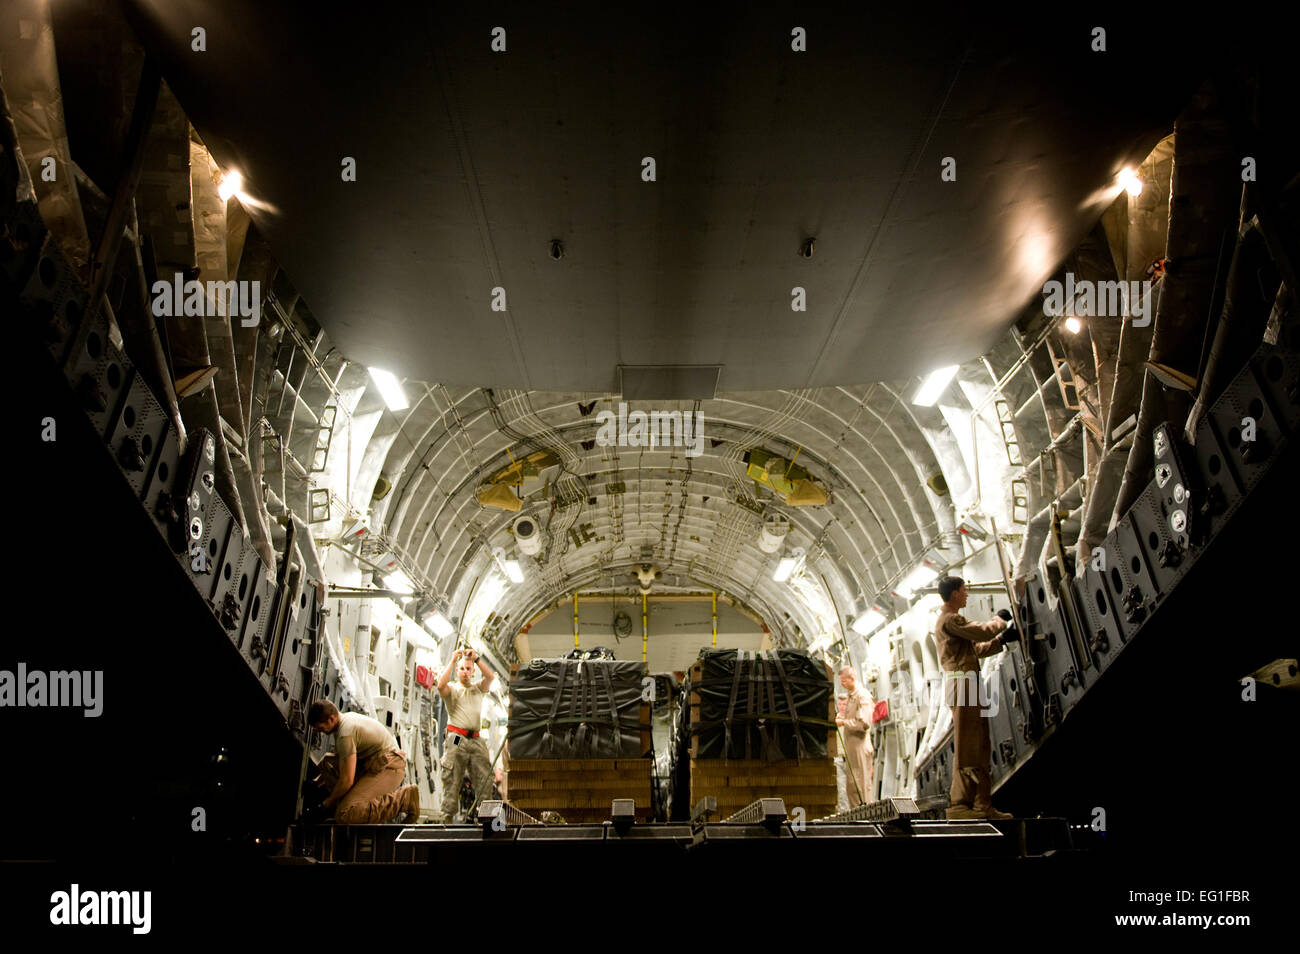 Us Air Force Loadmasters With The 816th Expeditionary Airlift Squadron,  Configure A C17 Globemaster Iii For An Airdrop While A Us Army Joint  Airdrop